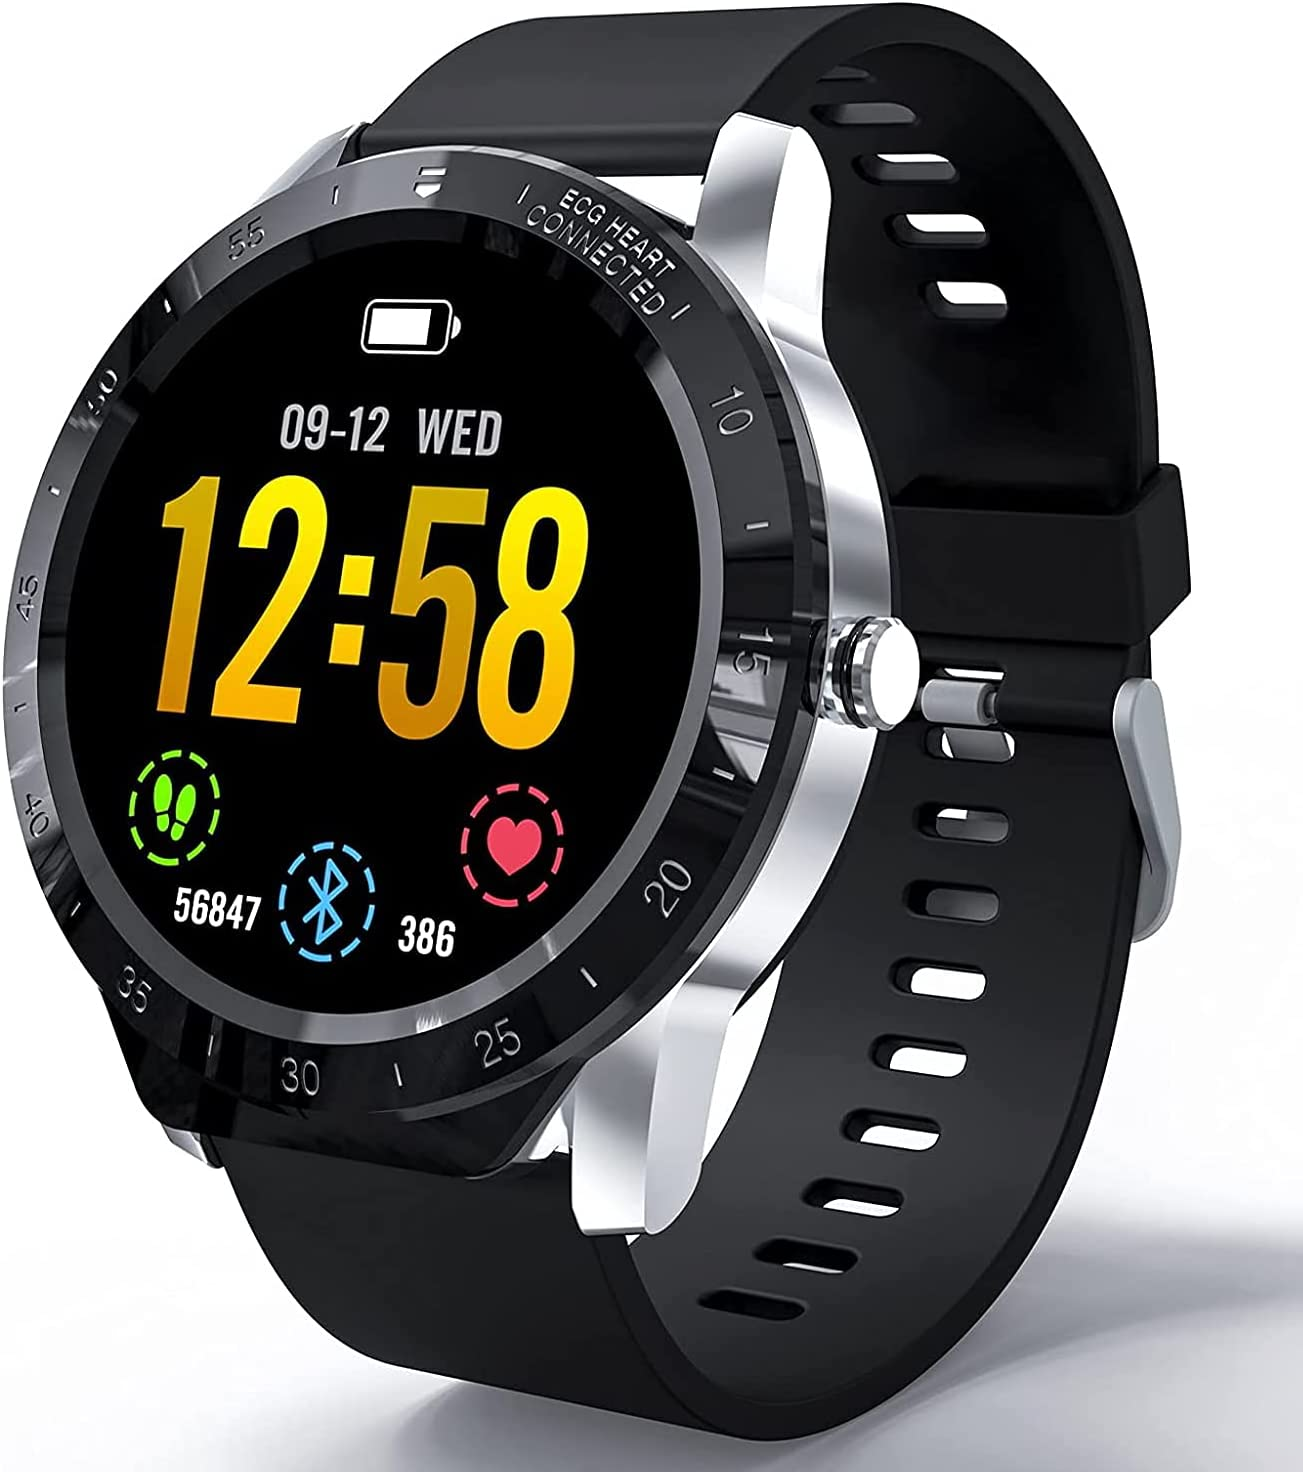 Smart Watch Men Fitness Tracker HAOQIN VS1 Heart Moni Sleep Rate Great Spring new work one after another interest